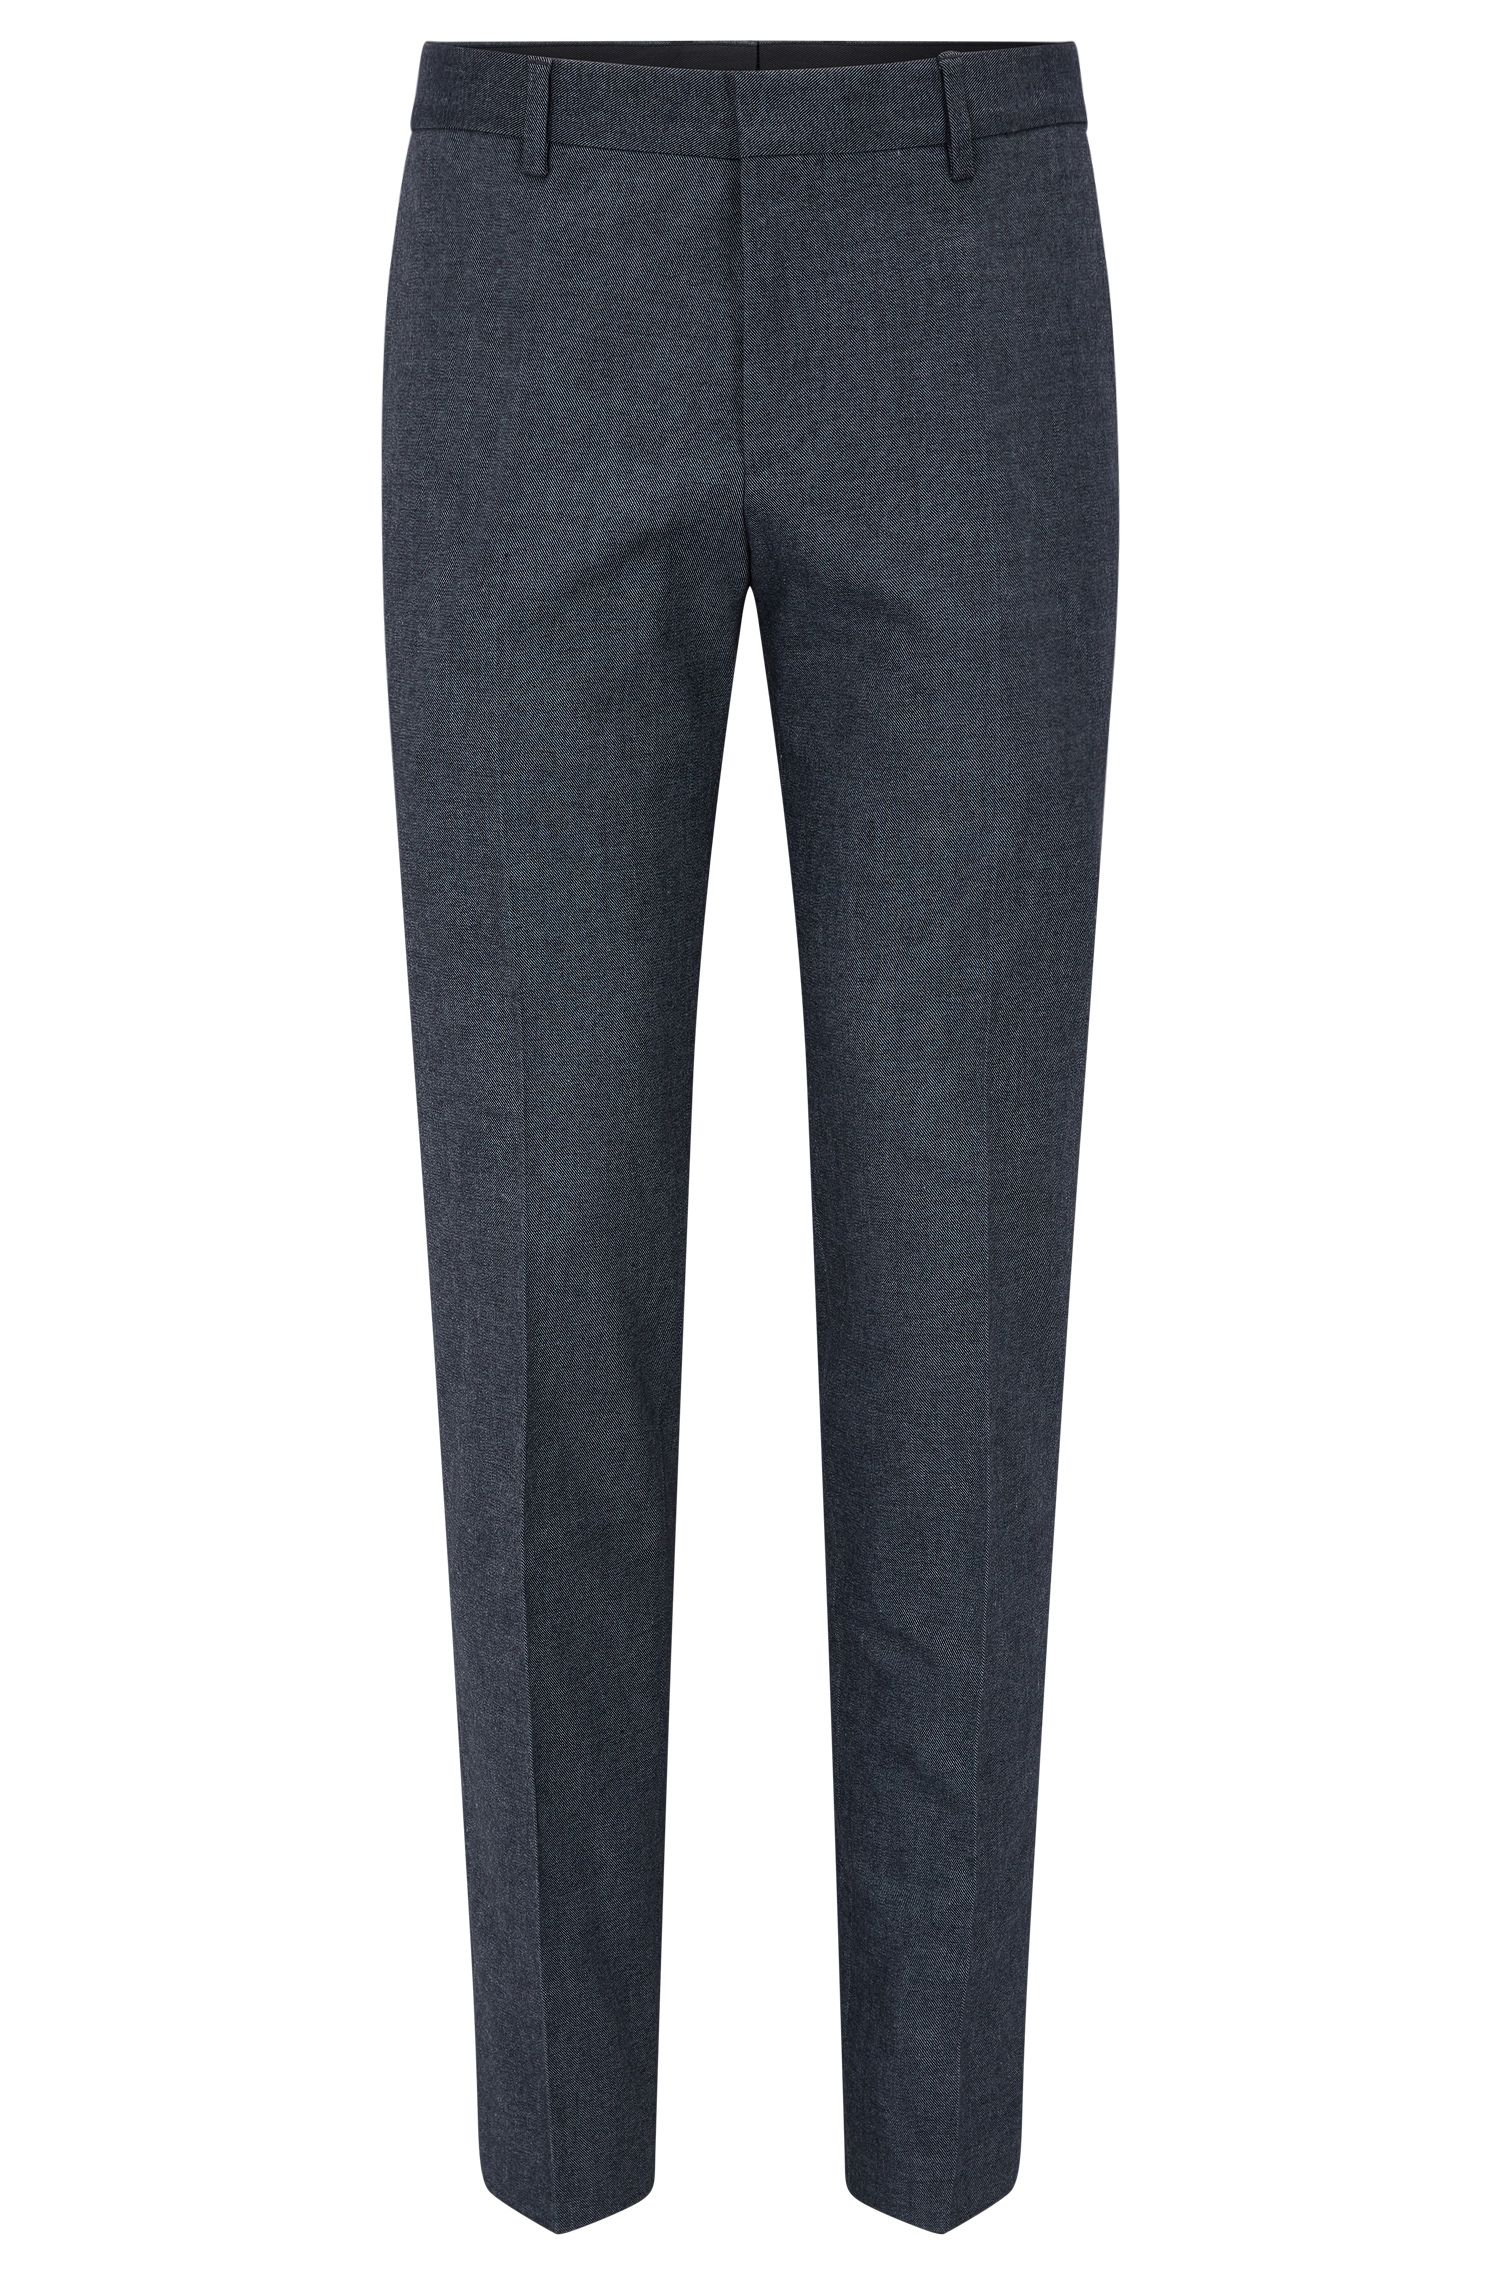 Cotton Blend Dress Pant, Slim Fit | Benso